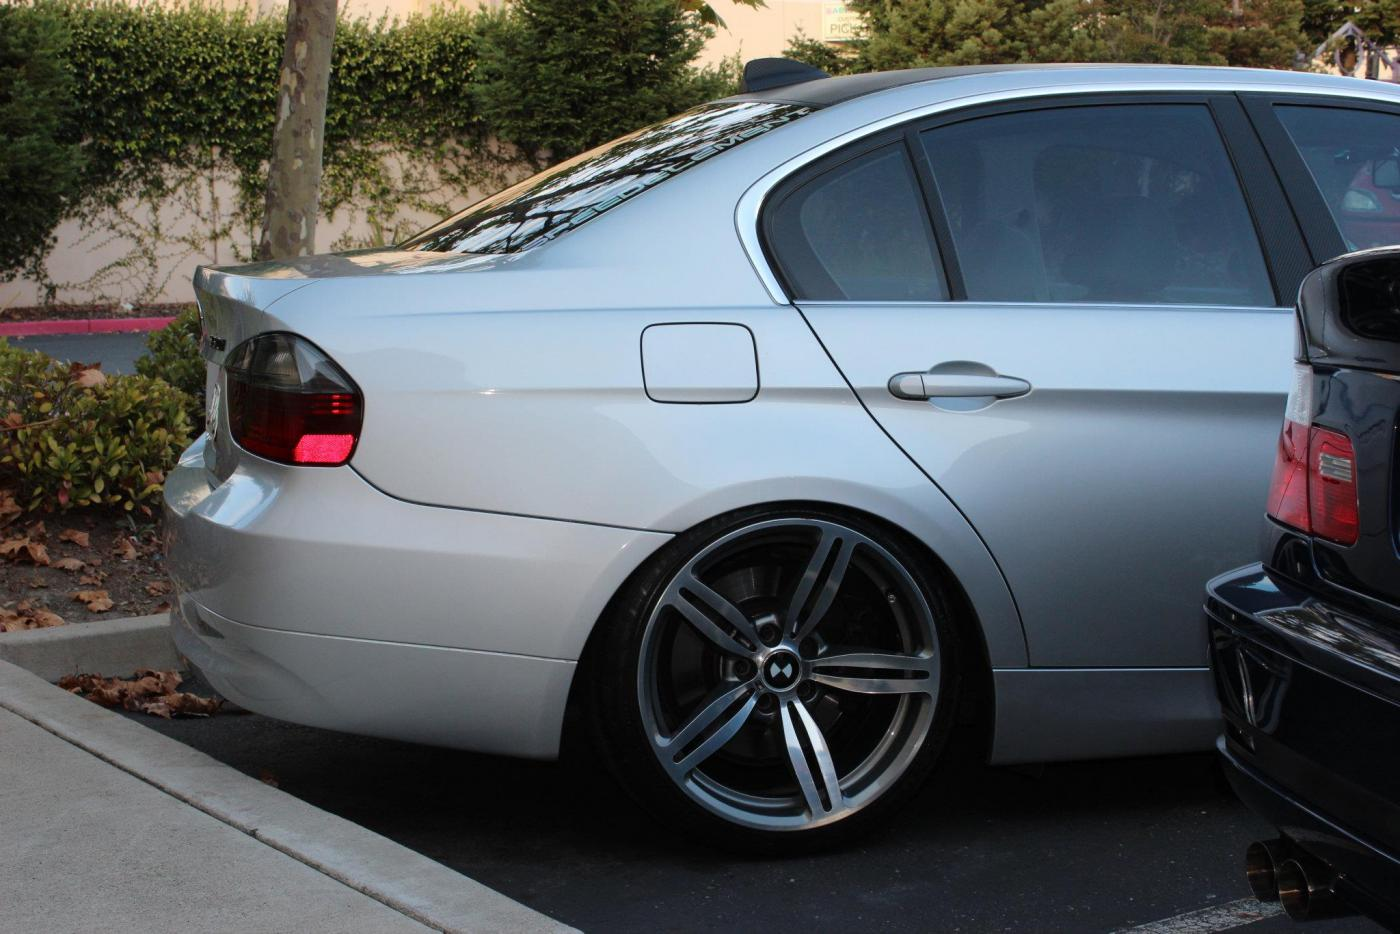 pre-lci e90 lowered on...